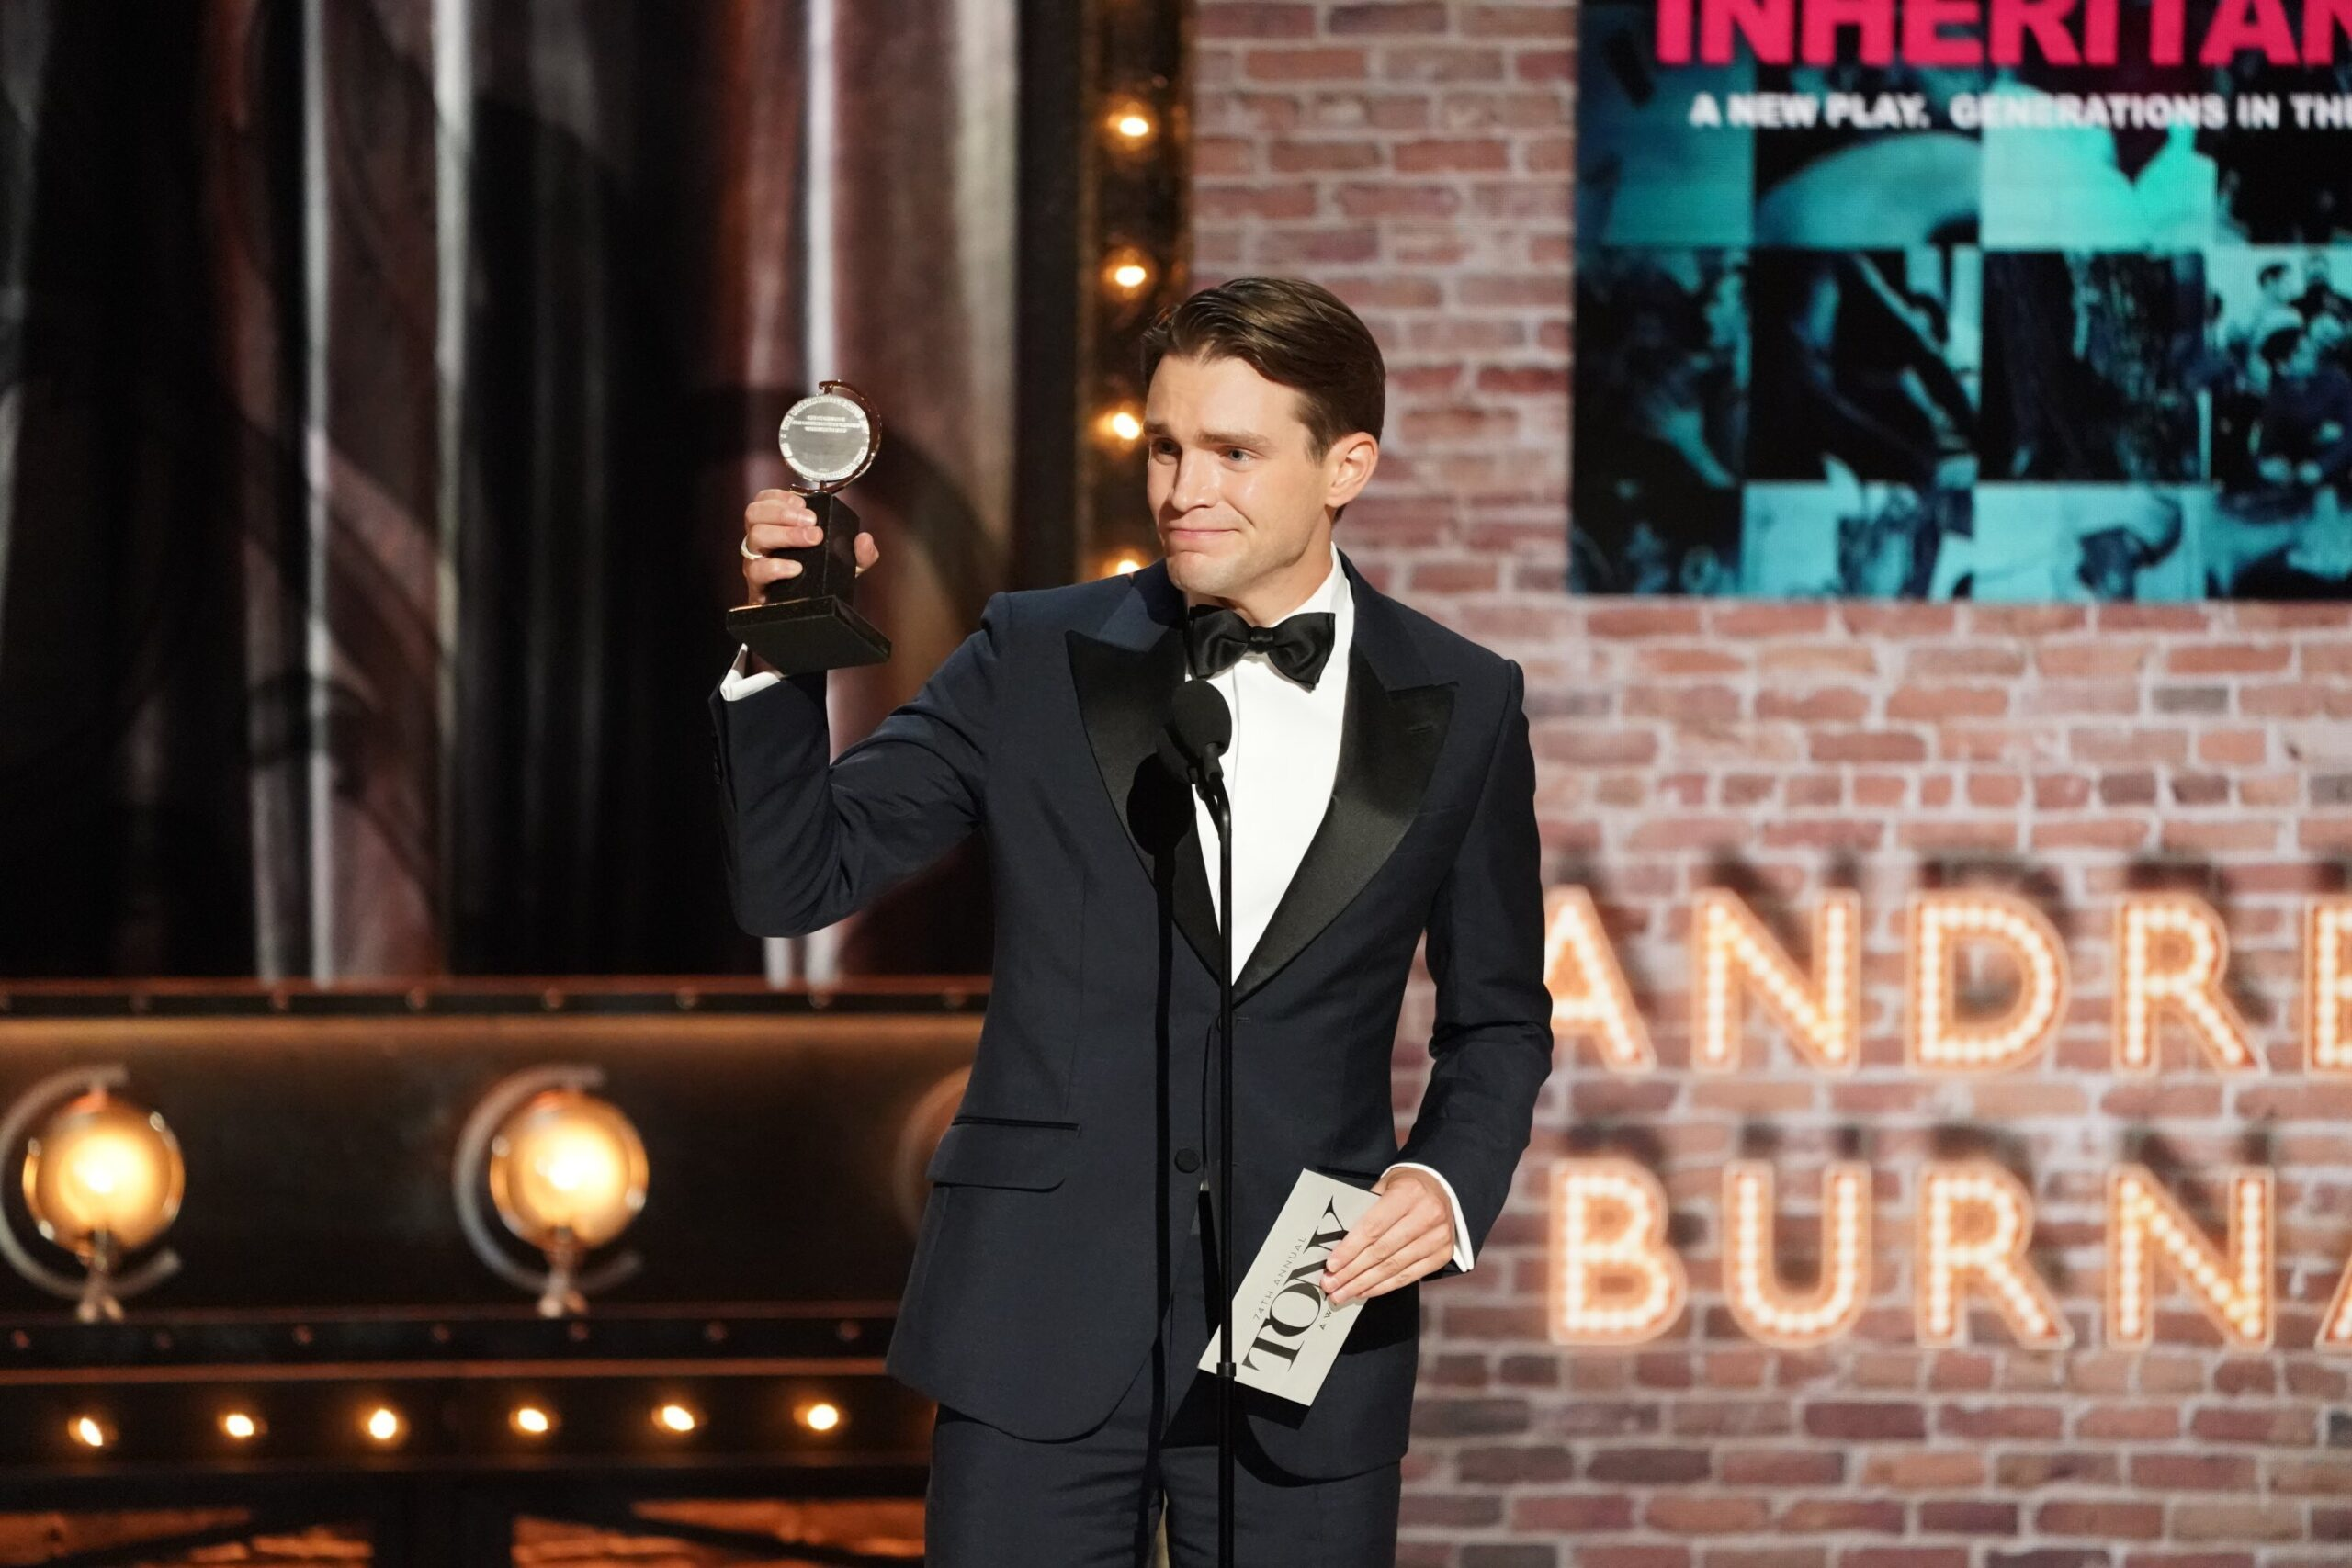 <i>Mary Kouw/CBS</i><br/>Andrew Burnap receives the award for Best Performance by an Actor in a Leading Role in a Play during Sunday's Tony Awards.